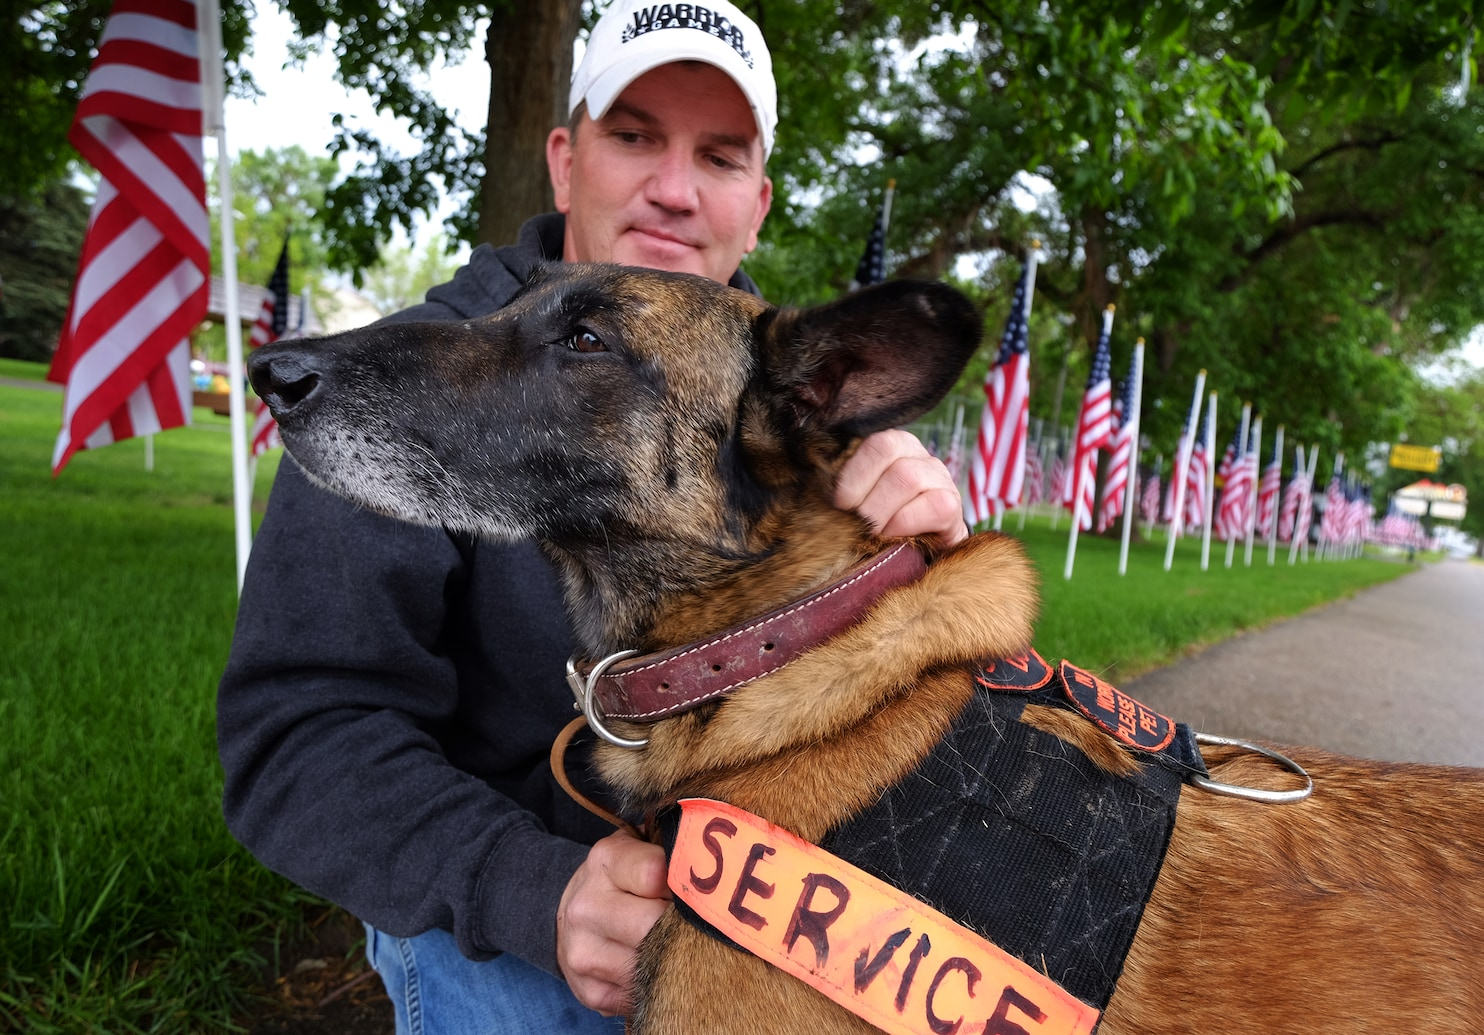 Wondrous Wyoming Iraq Was Killed Iraq Was Killed Hisowner Wants To Know Washington Post A Combat Dog Who Earned Bronze Stars A Combat Dog Who Earned Bronze Stars bark post Holstered Attack Dog